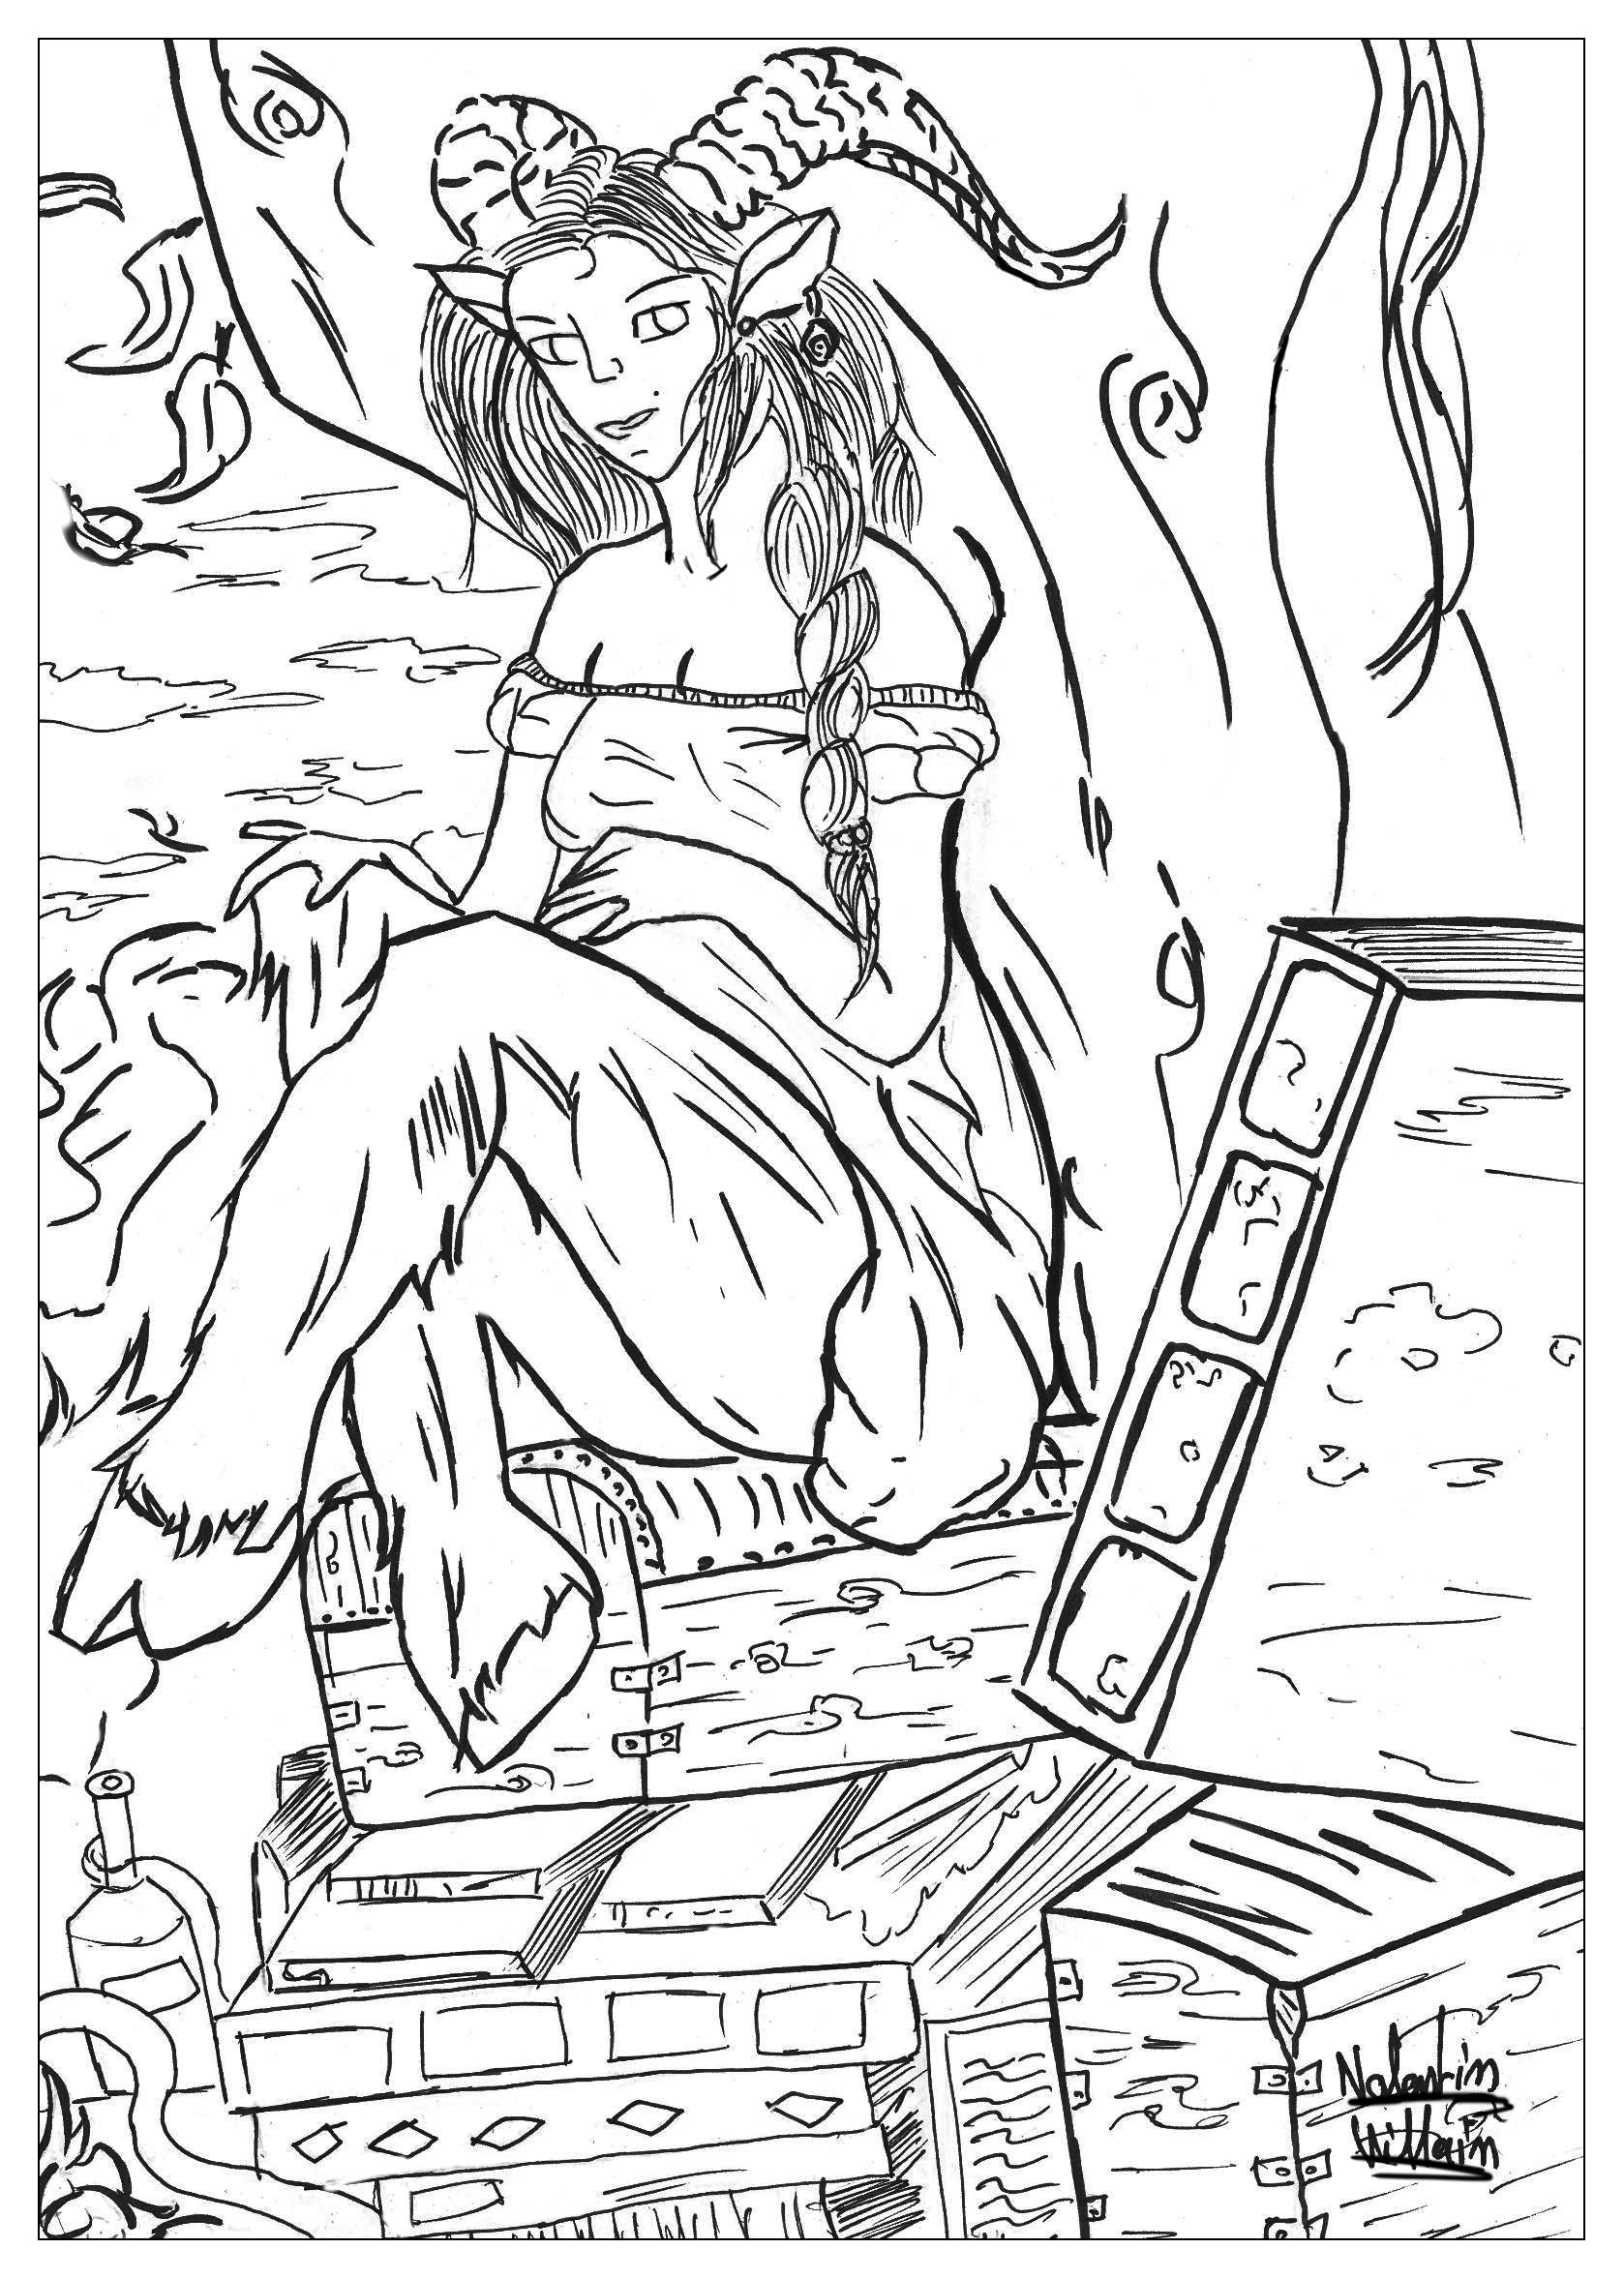 satyr valentin myths u0026 legends coloring pages for adults